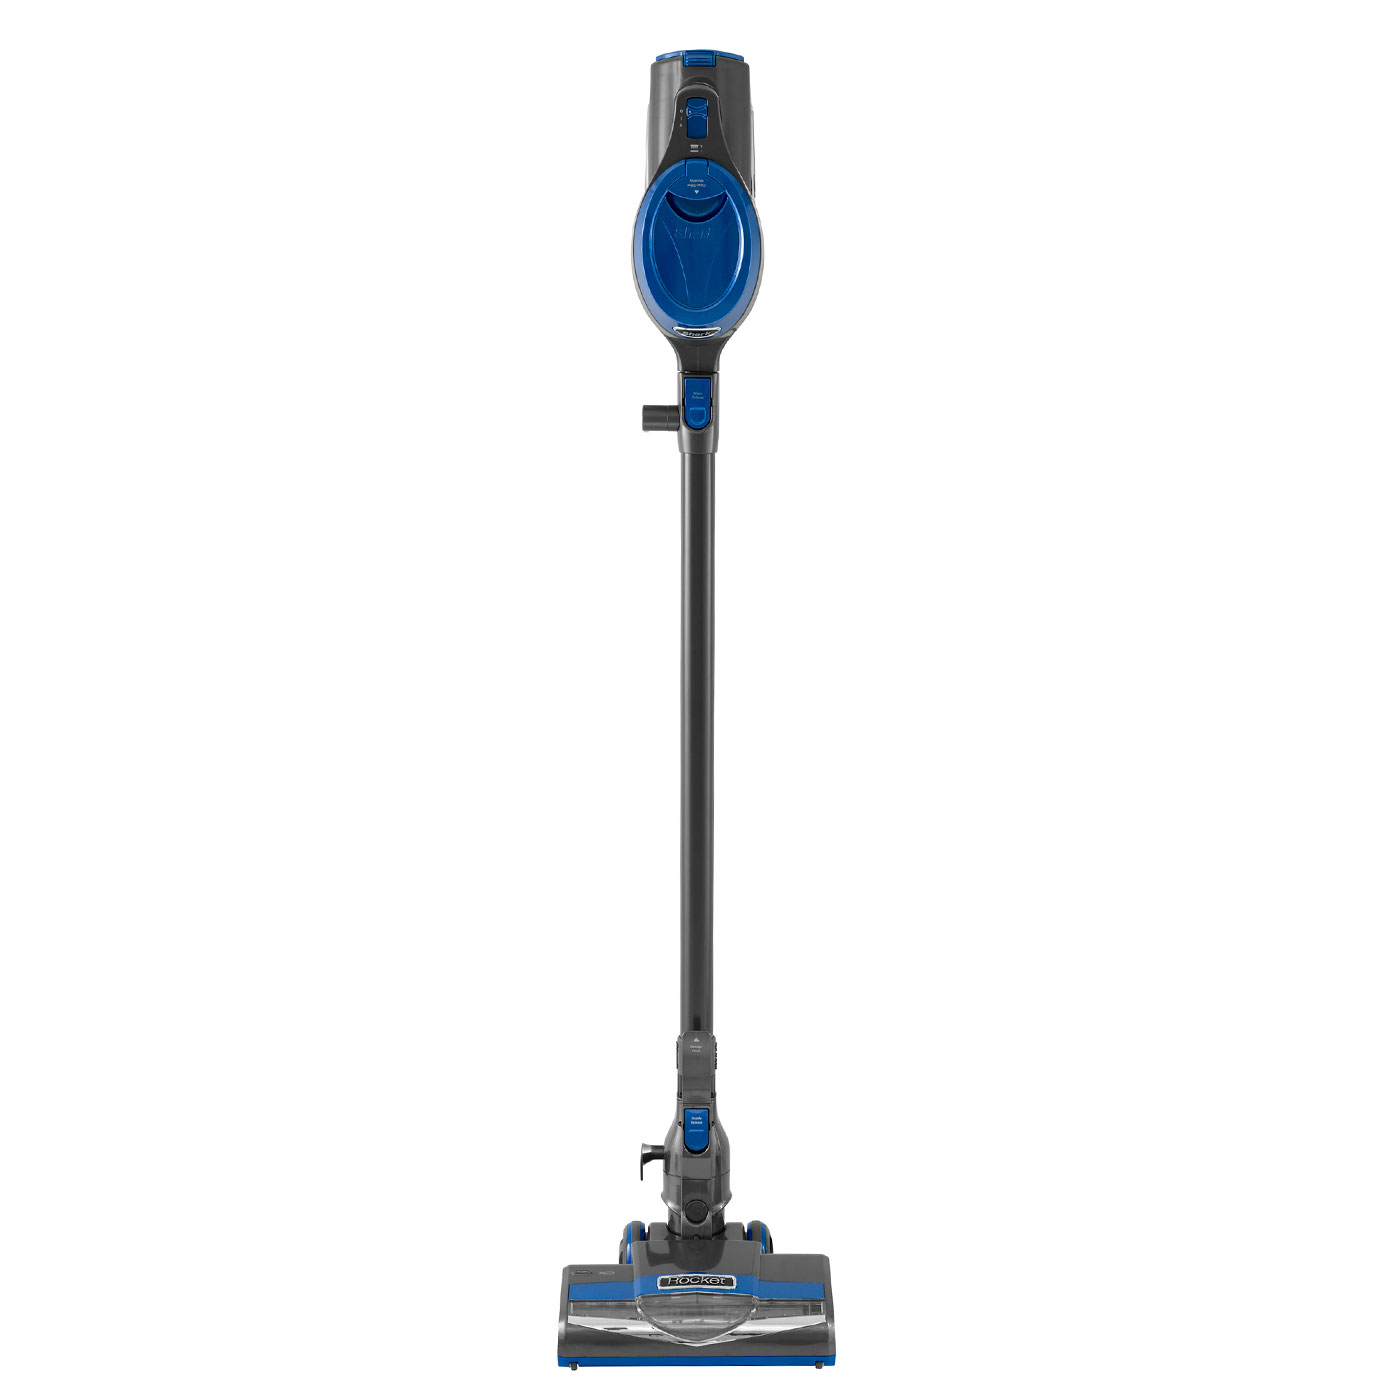 Shark Rocket Lightweight Corded Handstick Vacuum Cleaner